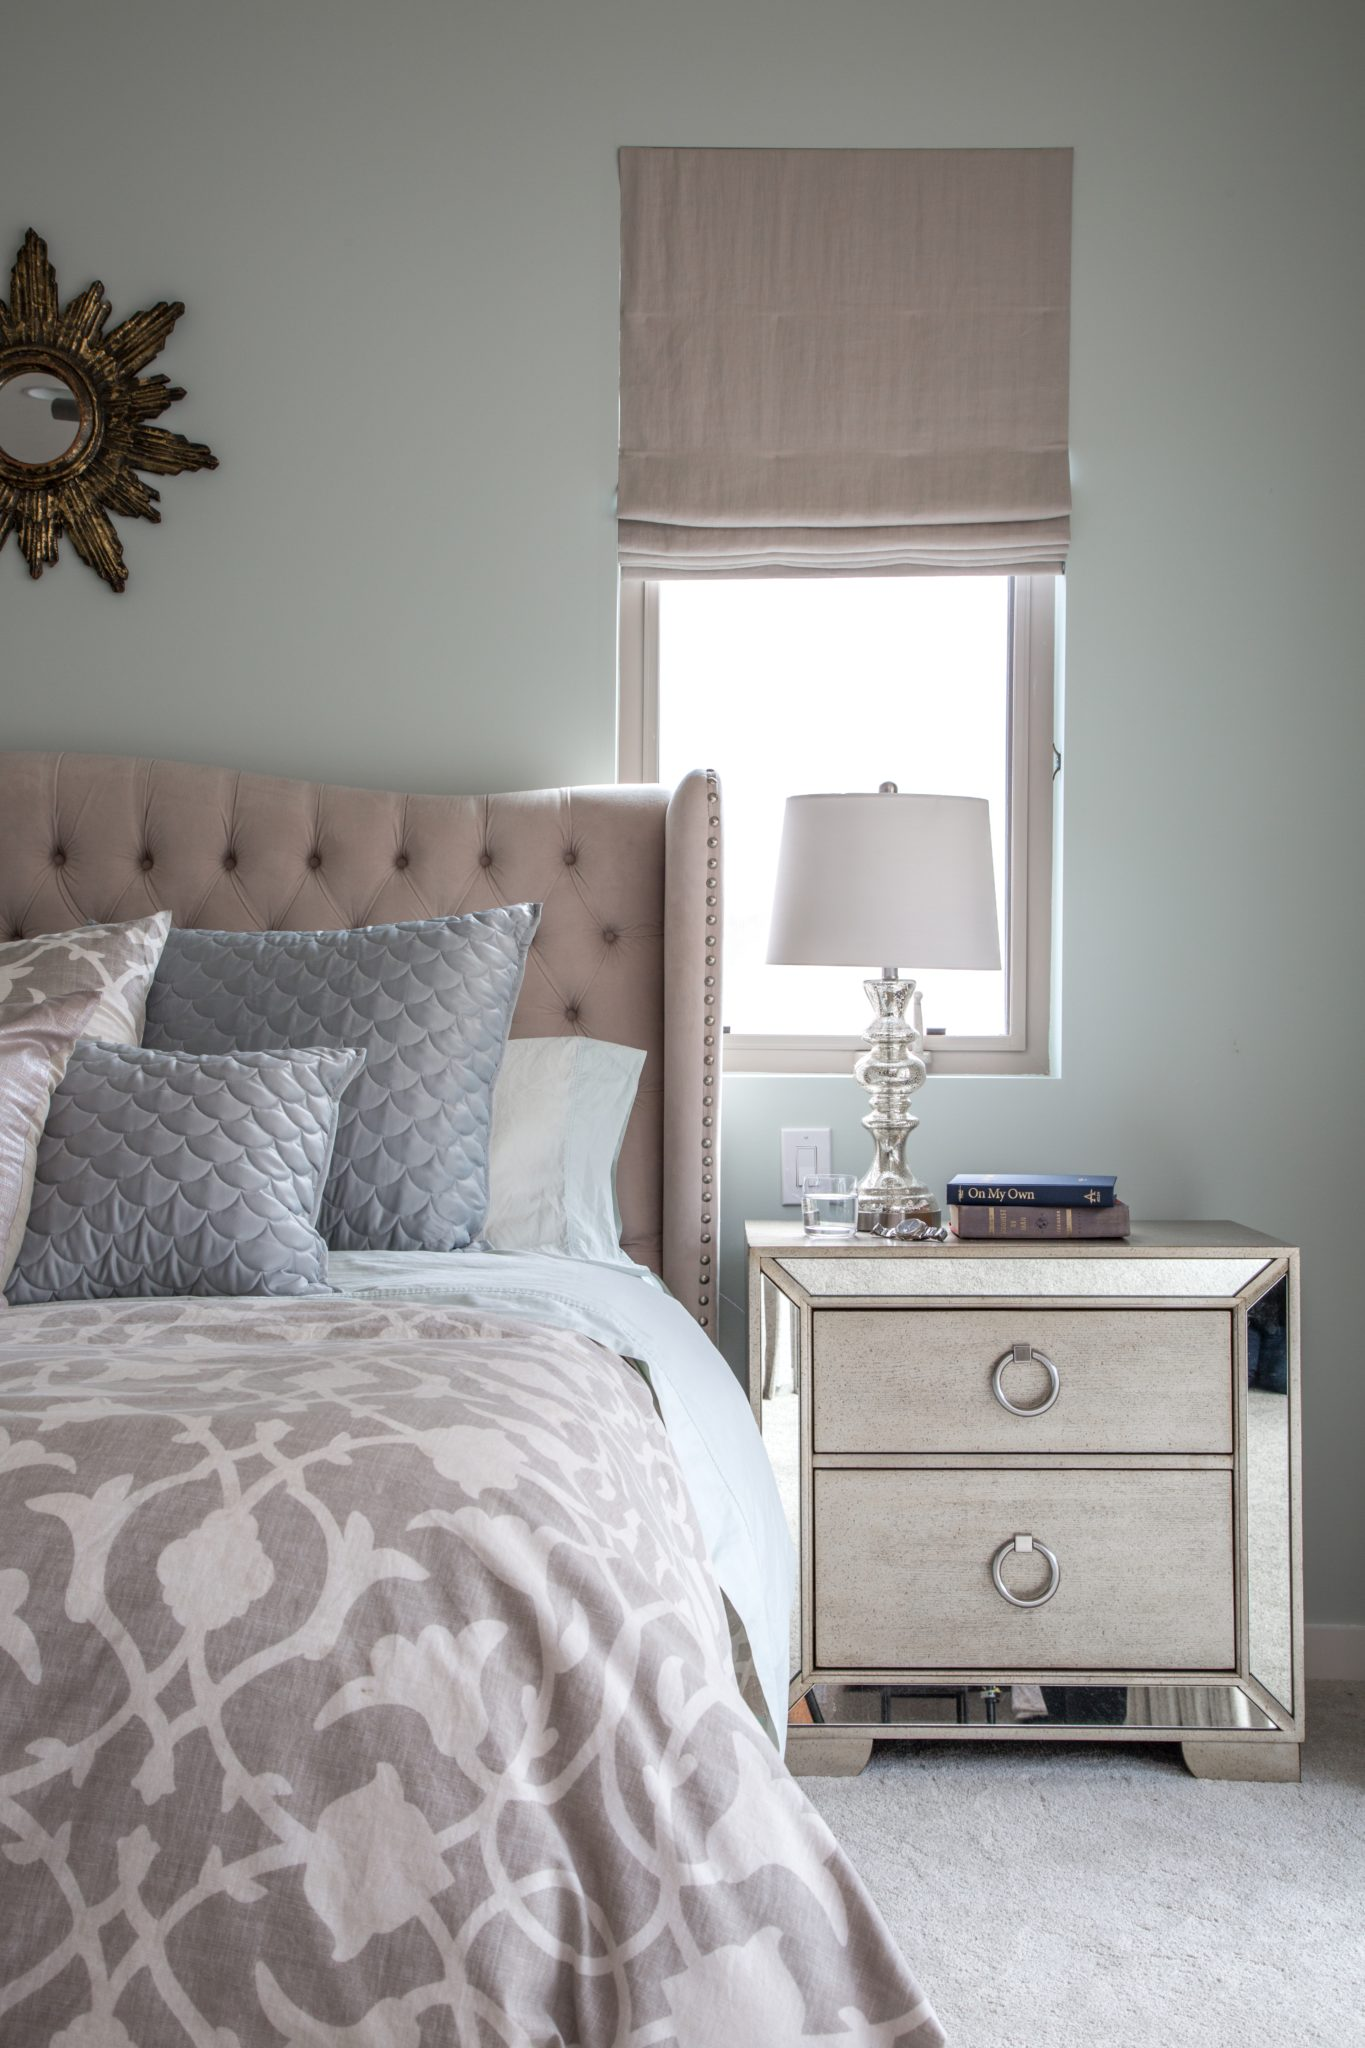 Moody Bedroom withLinen Roman Shadeand Tufted Bed. By dmar Interiors